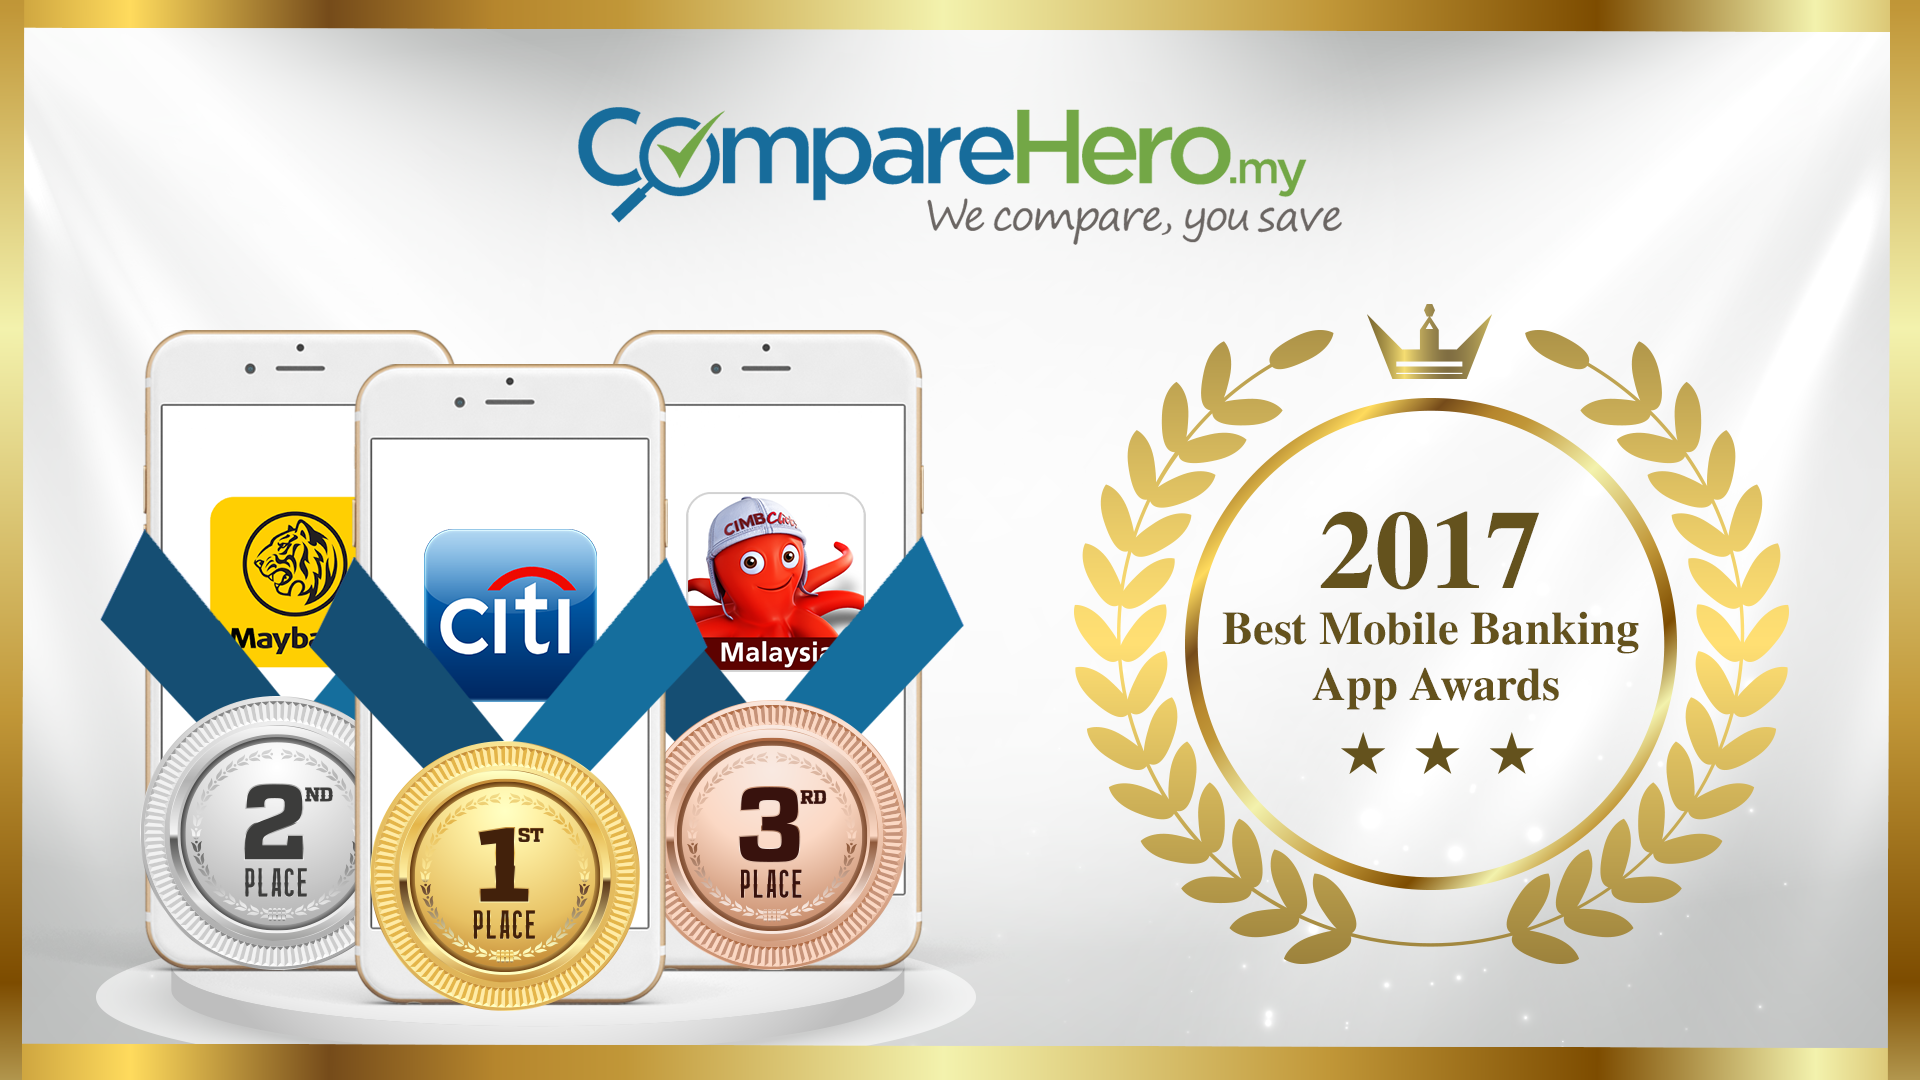 CompareHero.my 2017 Mobile Banking Apps Award Winners Announced